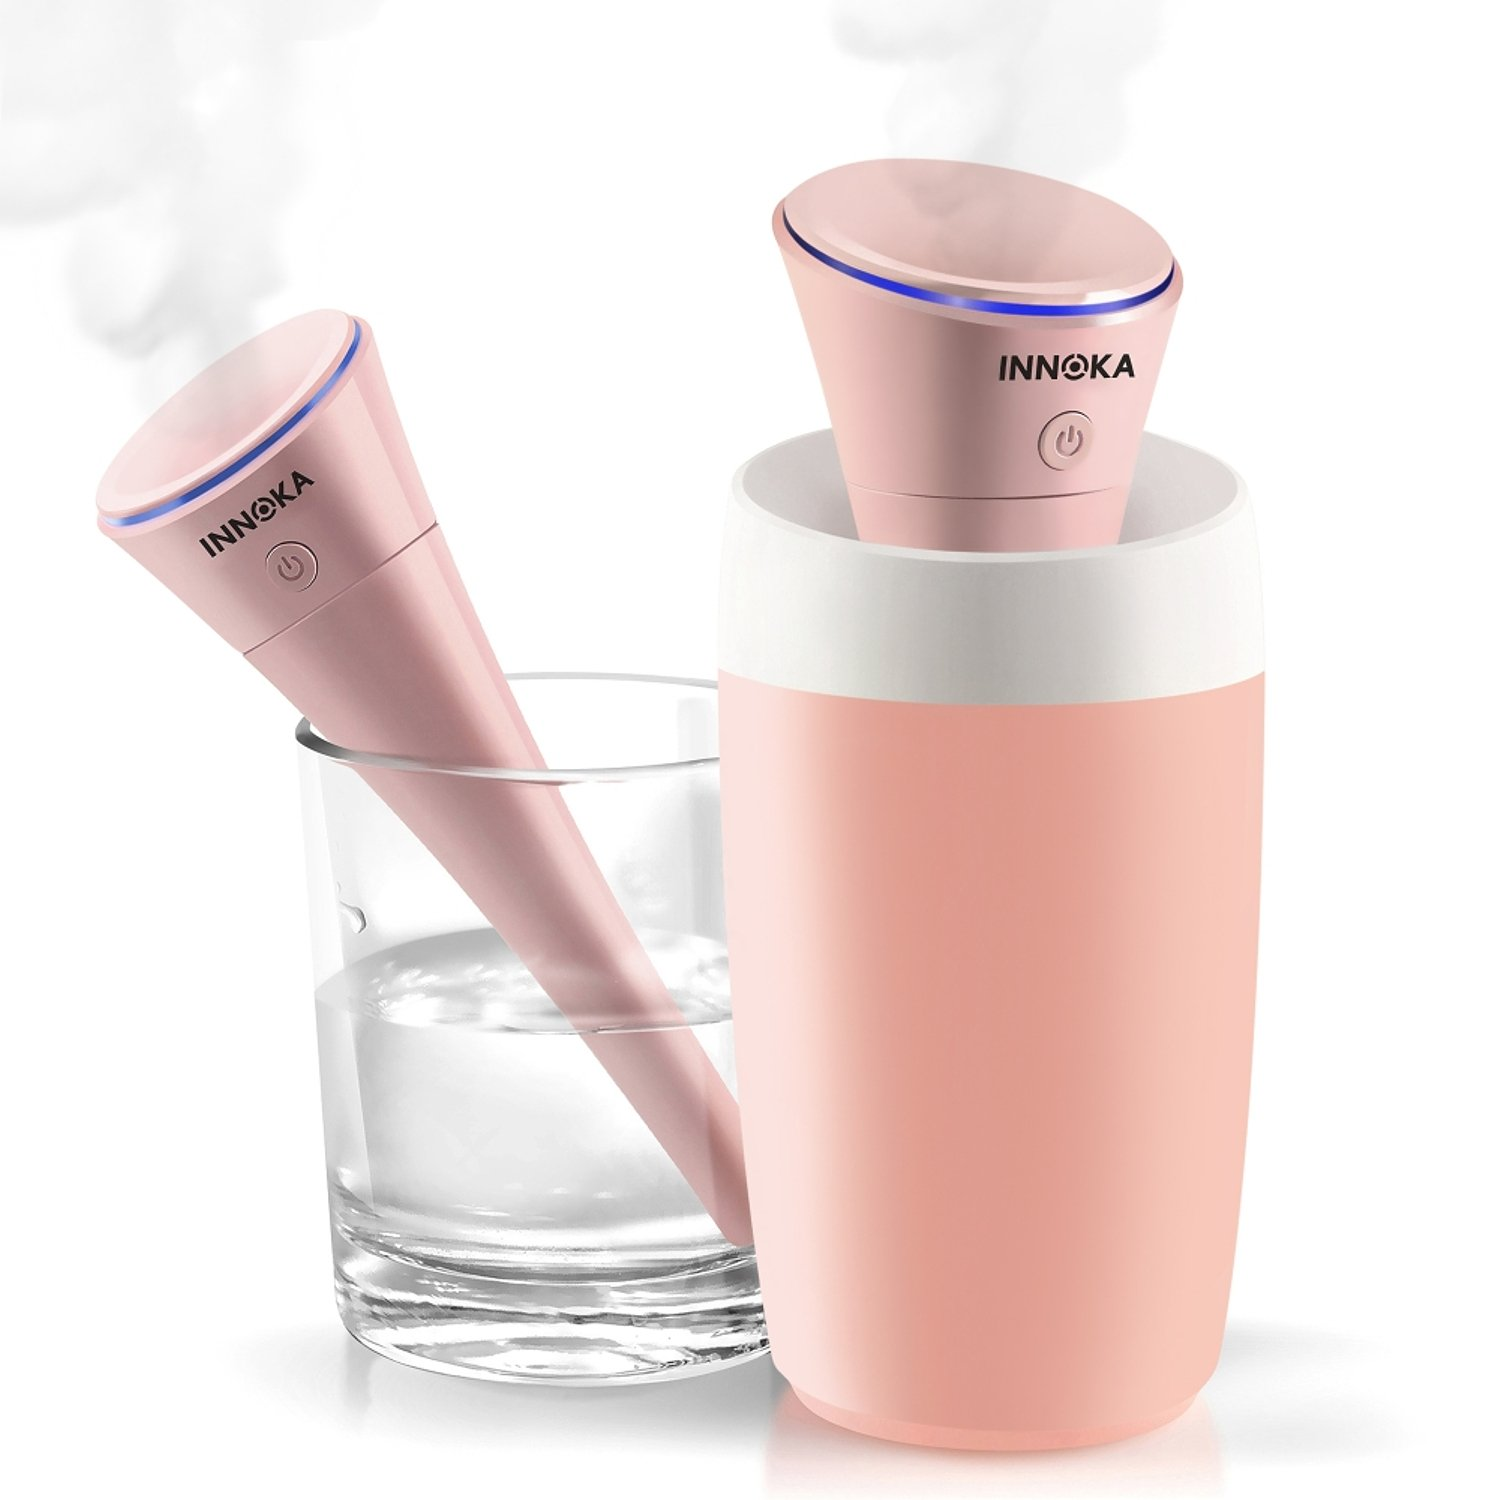 INNOKA Ultrasonic Portable USB Travel Humidifier Cool Mist Mini Humidifier [Auto Shut-Off & Whisper Quiet & Detachable USB Cable] w/LED Light Indicator for Home Bedroom Office Hotel Car, 280ml, Pink